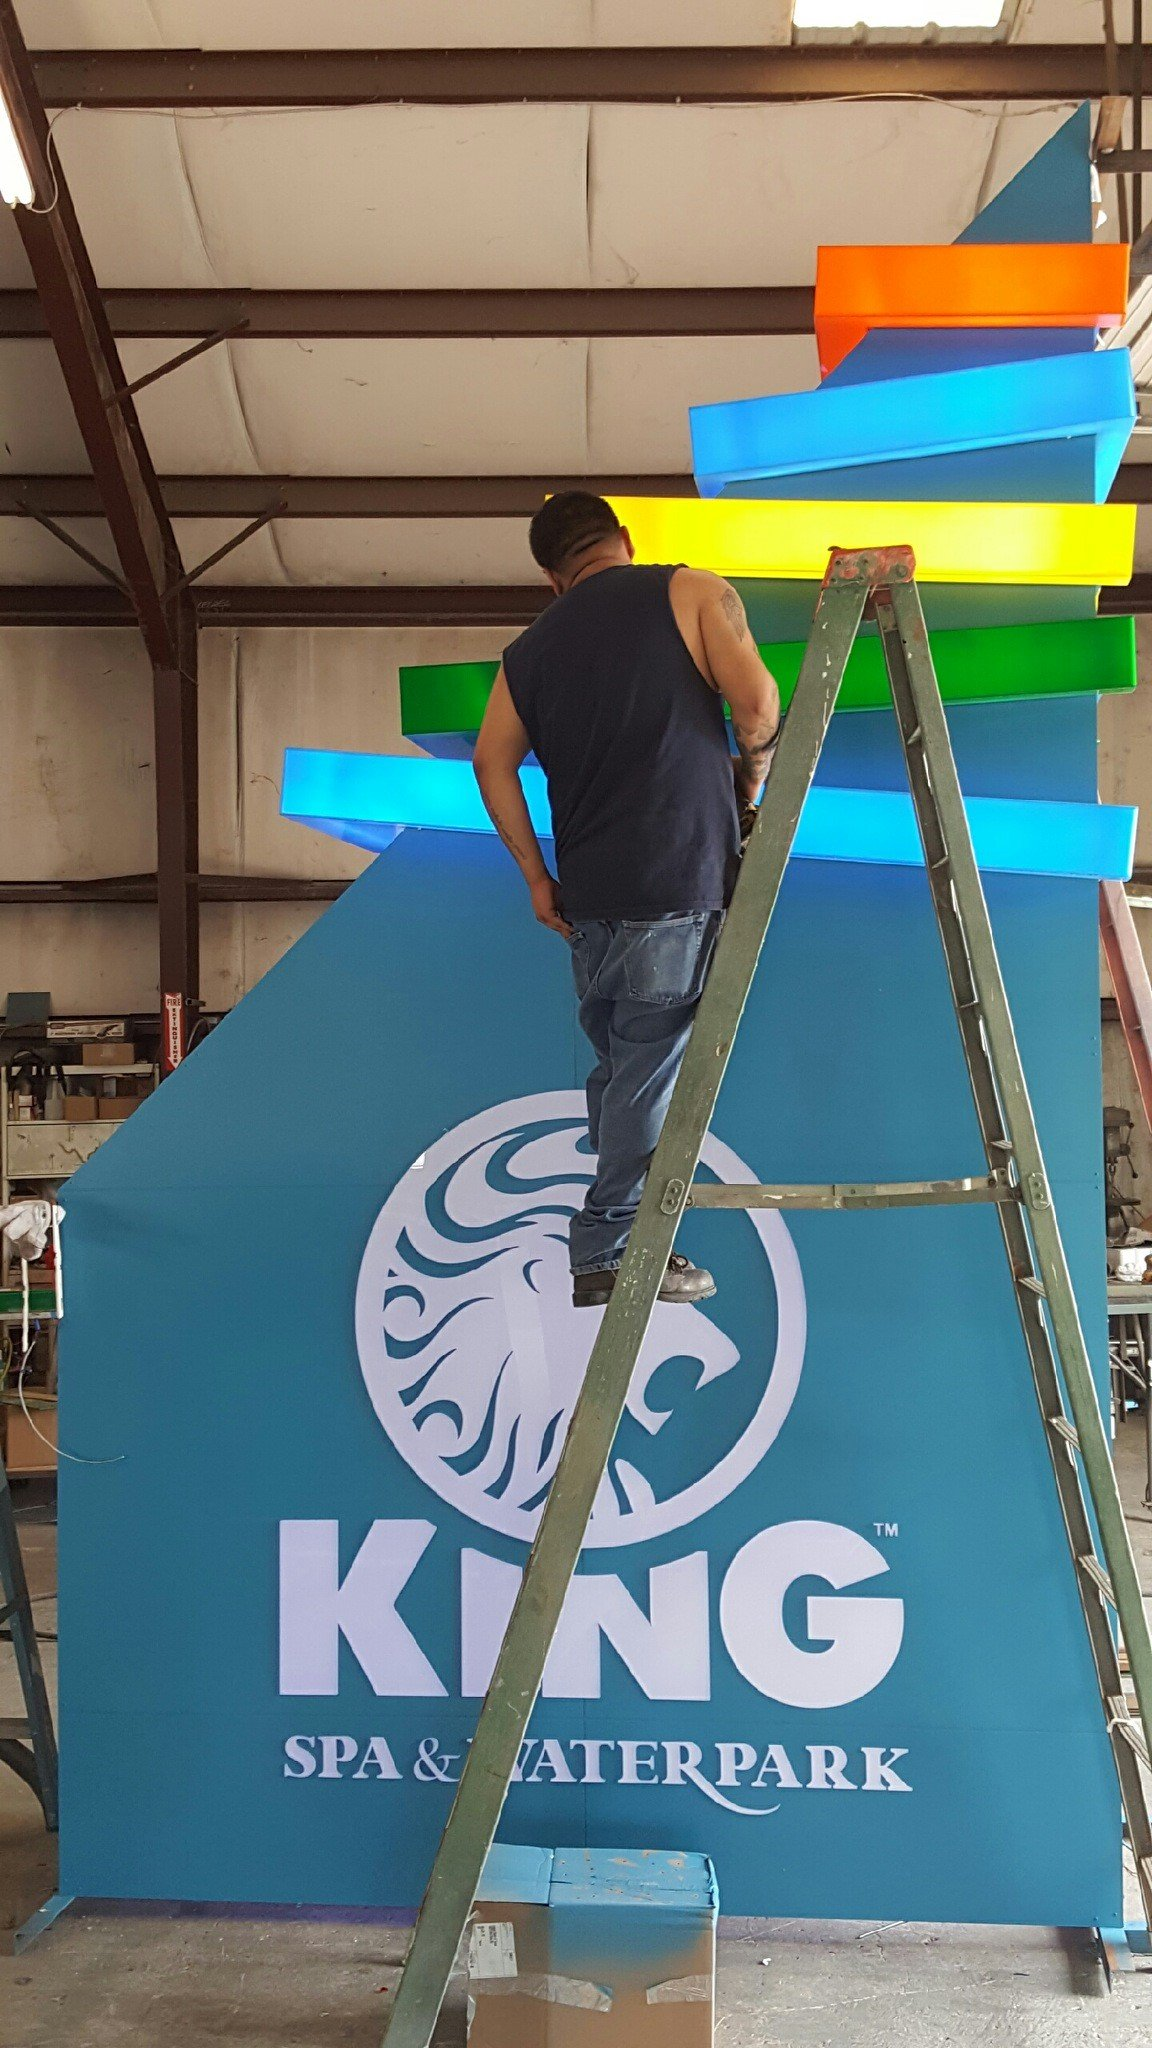 King Spa & Waterpark Sign